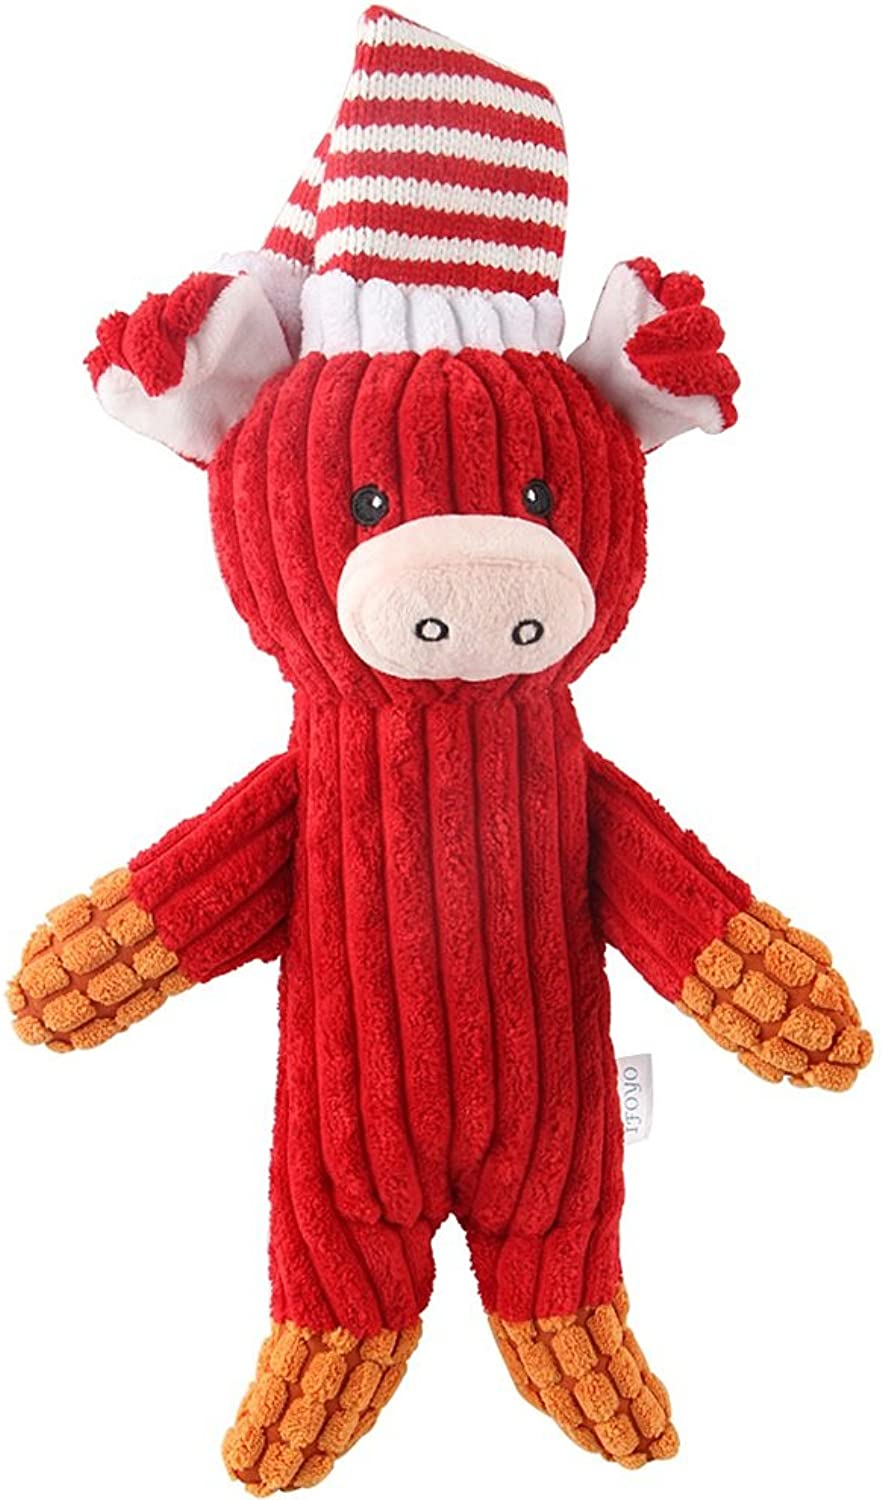 Best Gift Pet Toy for Prevent Boredom,Interactive Plush Squeaky Dog Toys Red